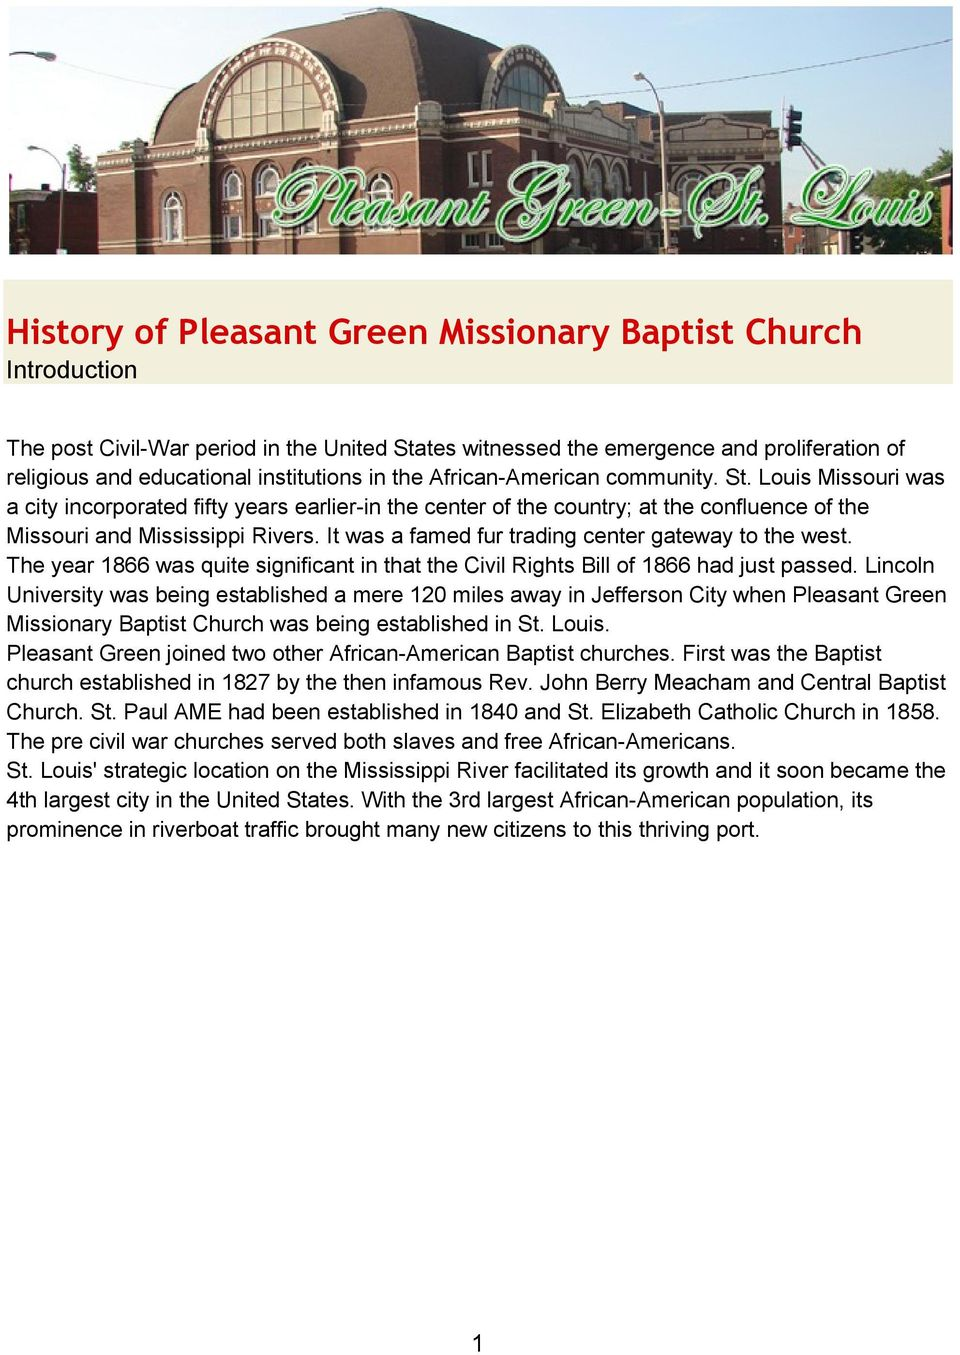 History of Pleasant Green Missionary Baptist Church Introduction - PDF